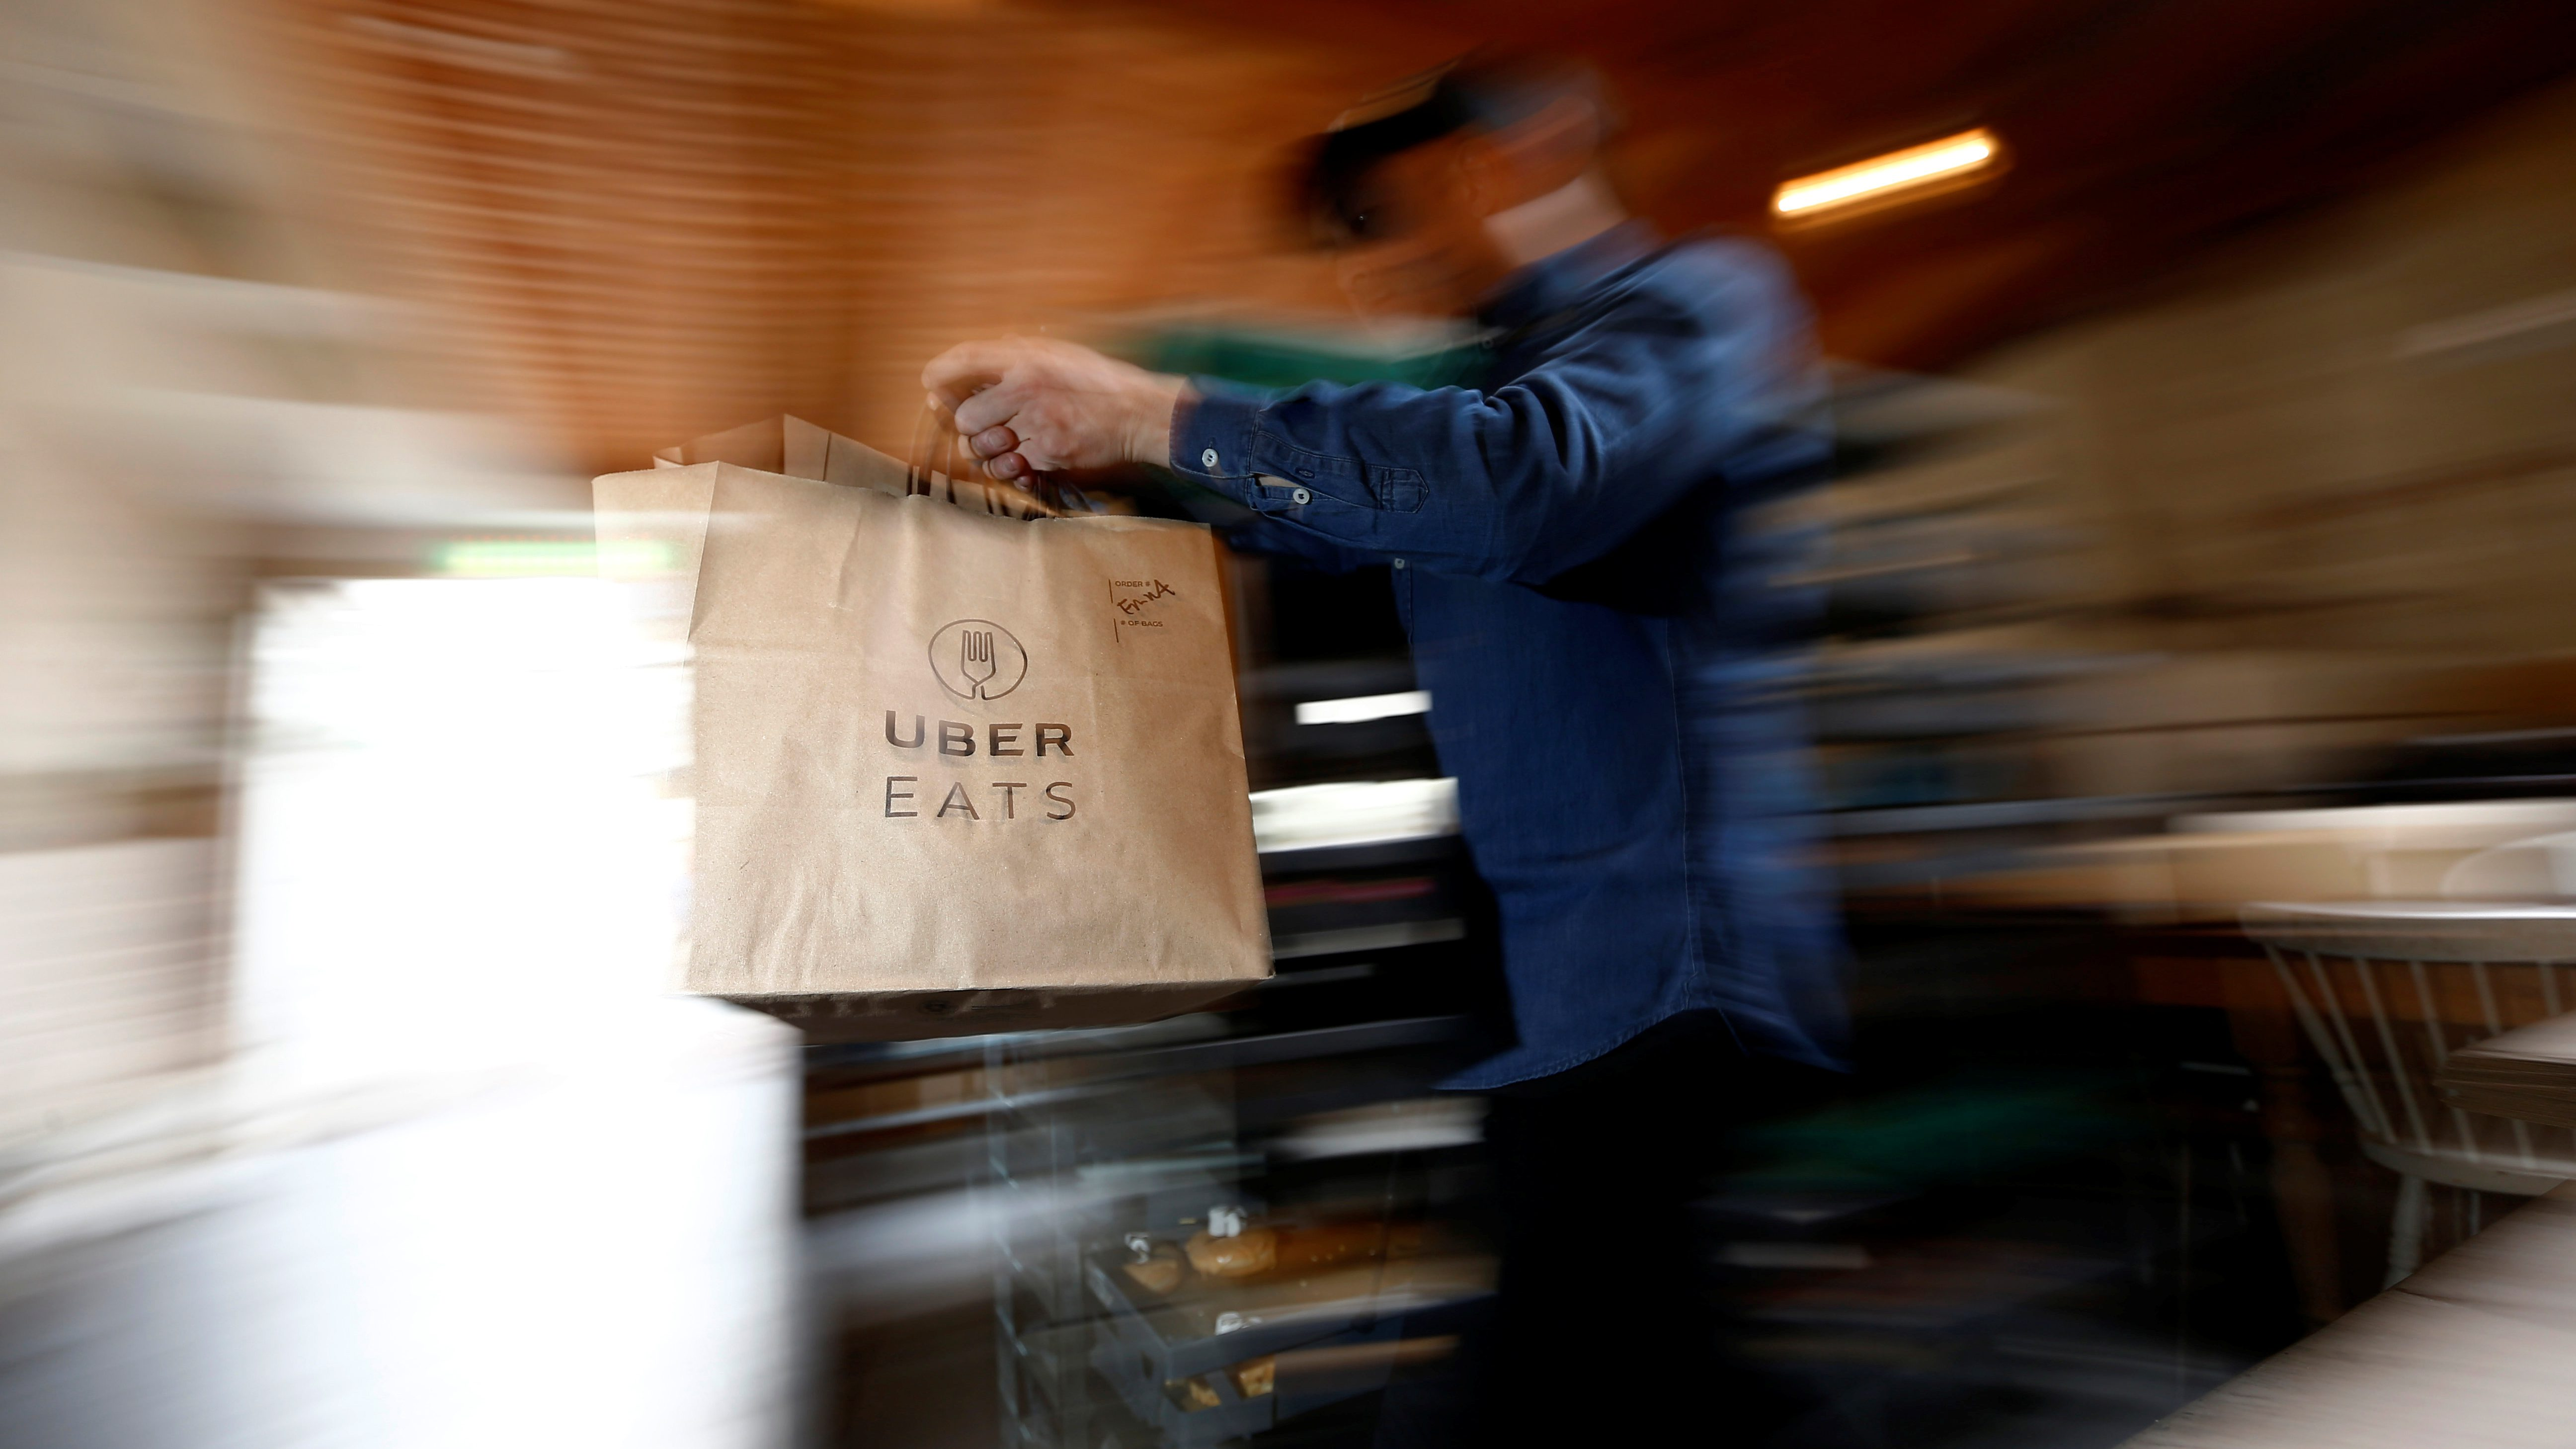 A bag of donuts destined for delivery via Uber Eats is rushed to a driver from a kitchen in Sydney August 12, 2016. Picture taken August 12, 2016. REUTERS/Jason Reed   - RTX2NU3U